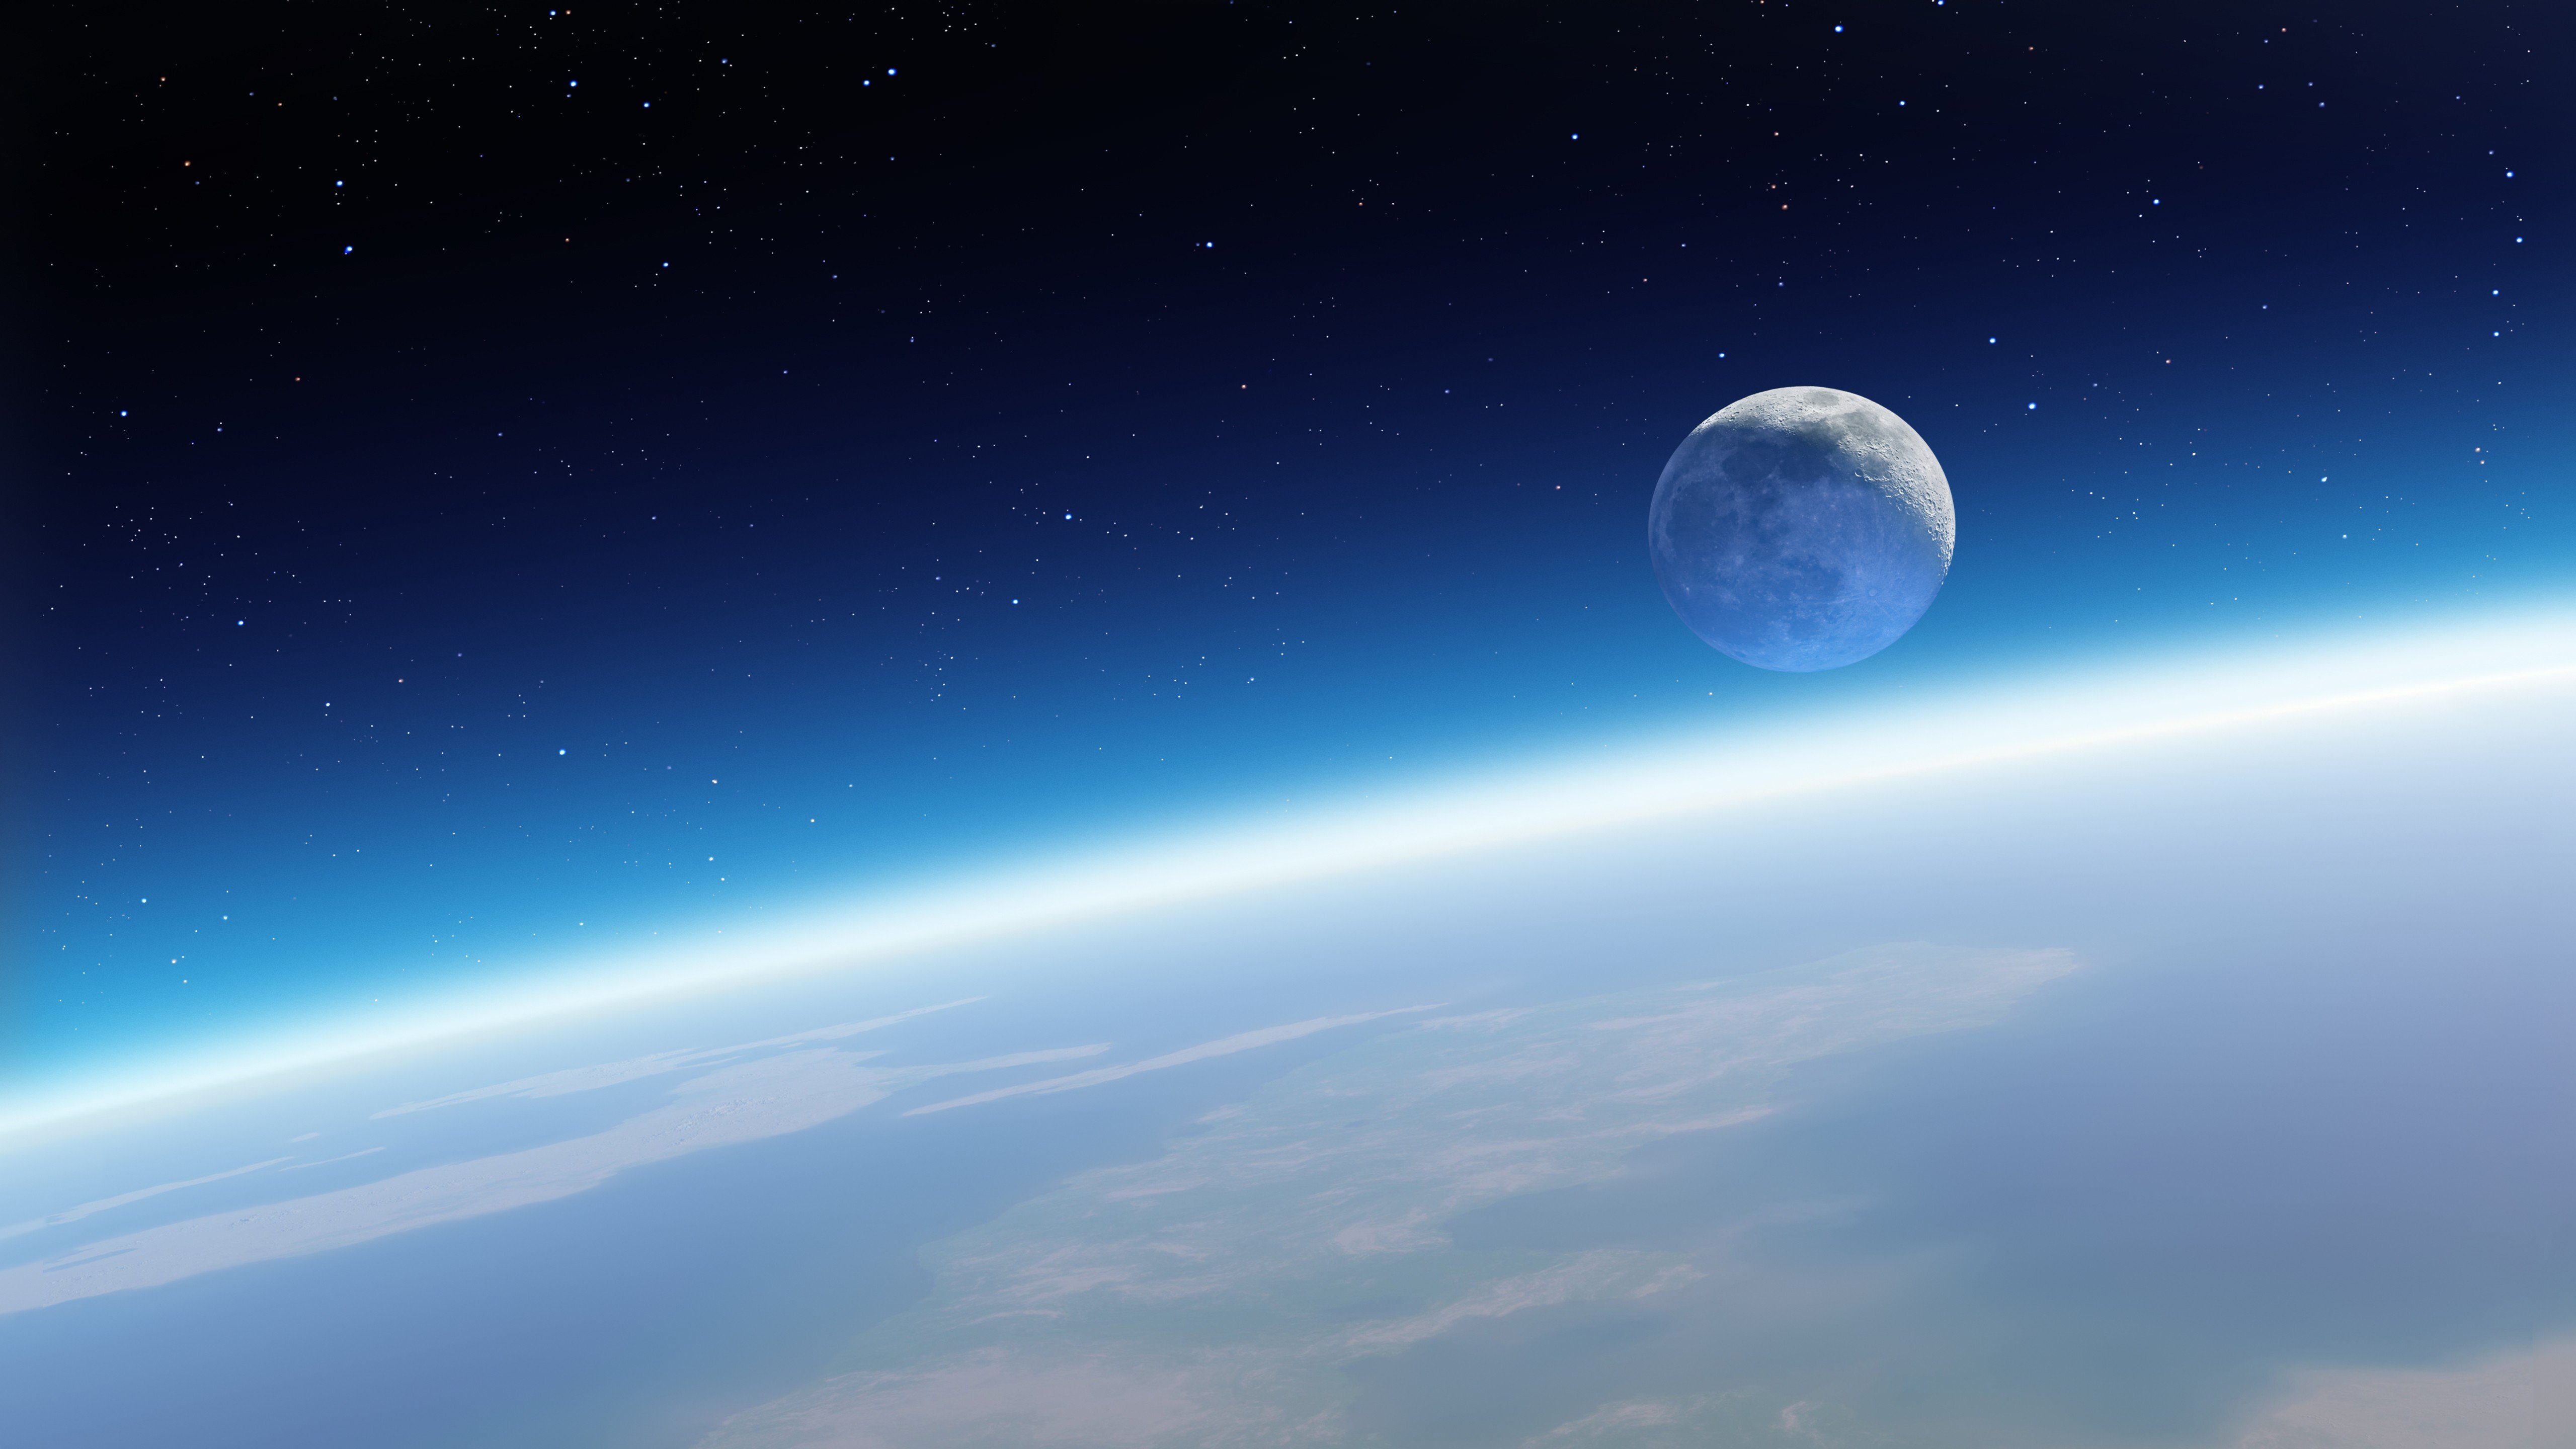 Space earth moon hd wallpapers desktop and mobile - Space moon wallpaper ...